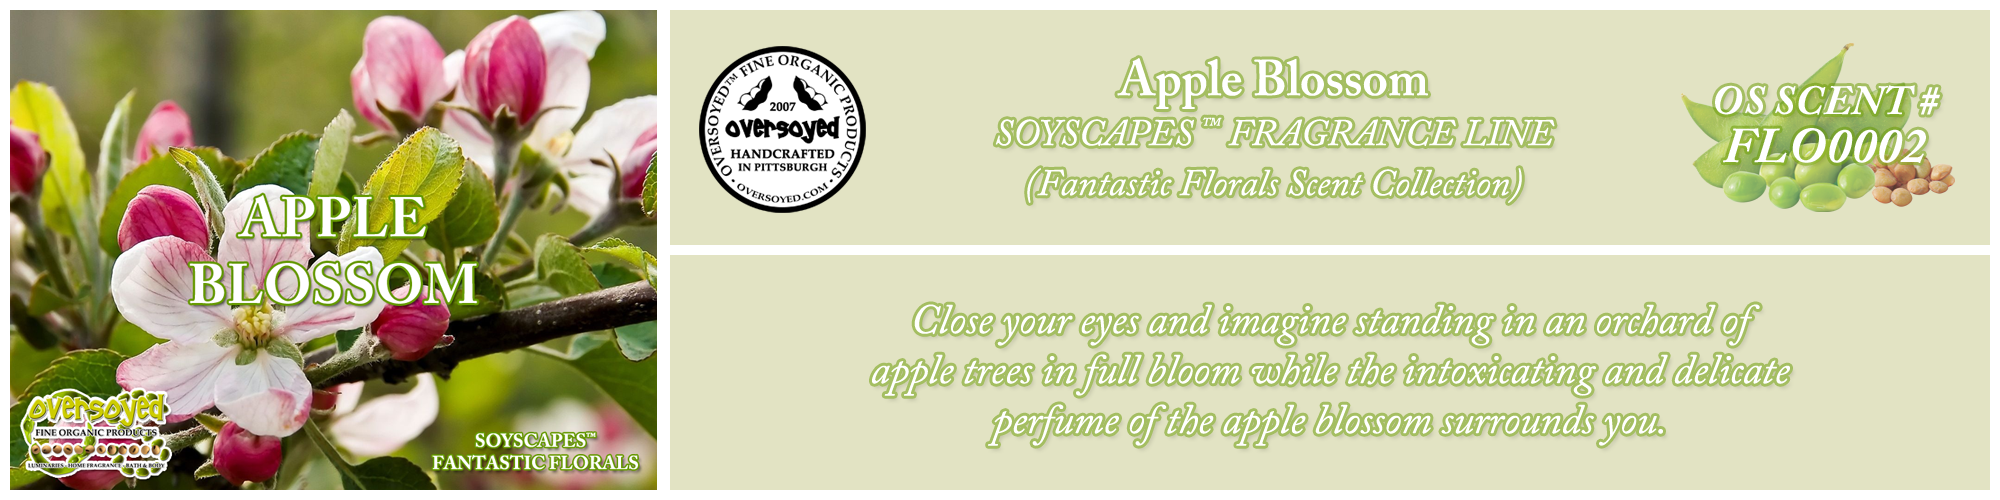 Apple Blossom Handcrafted Products Collection